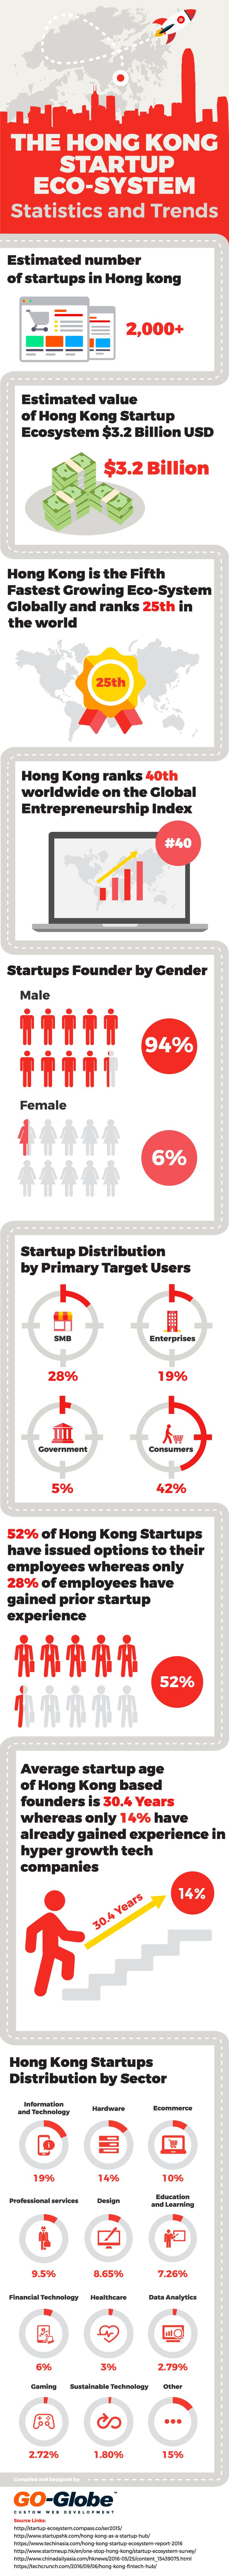 The Hong Kong Startup Eco System Infographic Startup Infographic Start Up Business Start Up